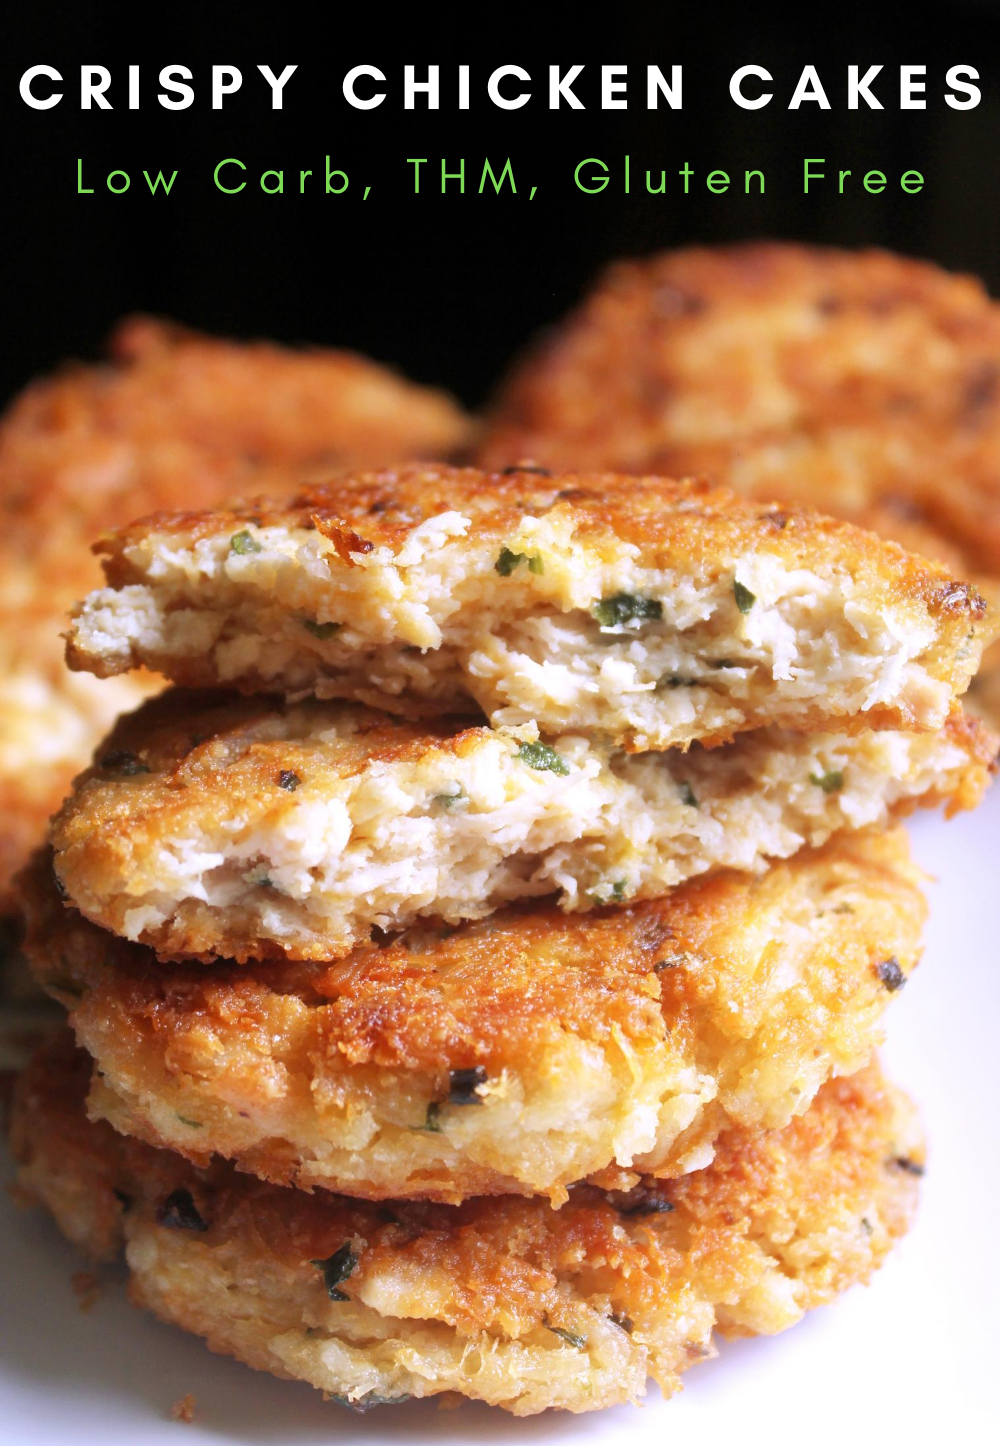 Crispy Chicken Cakes